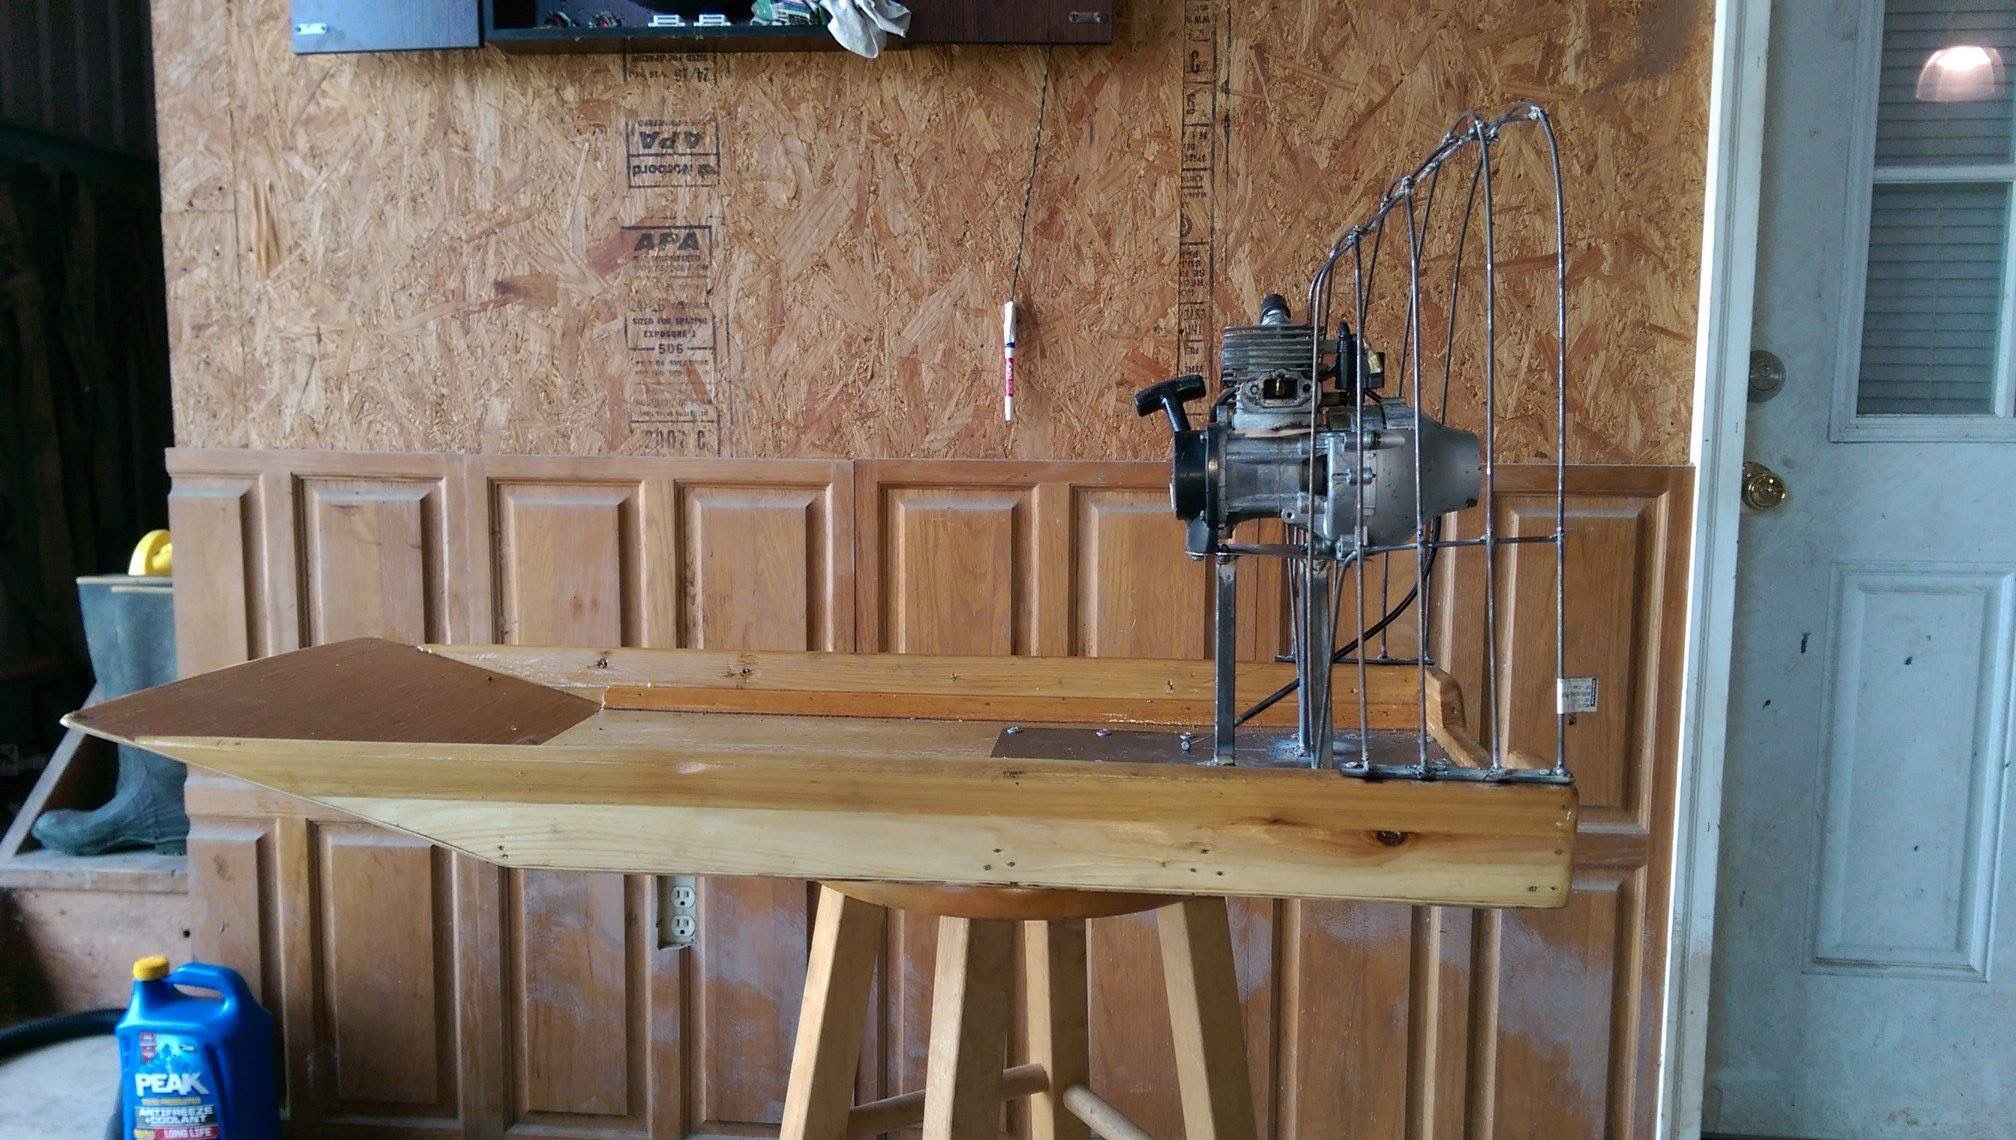 Homemade plywood hull 3 39 l x 14 w 94hp weedeater for How to build an airboat motor